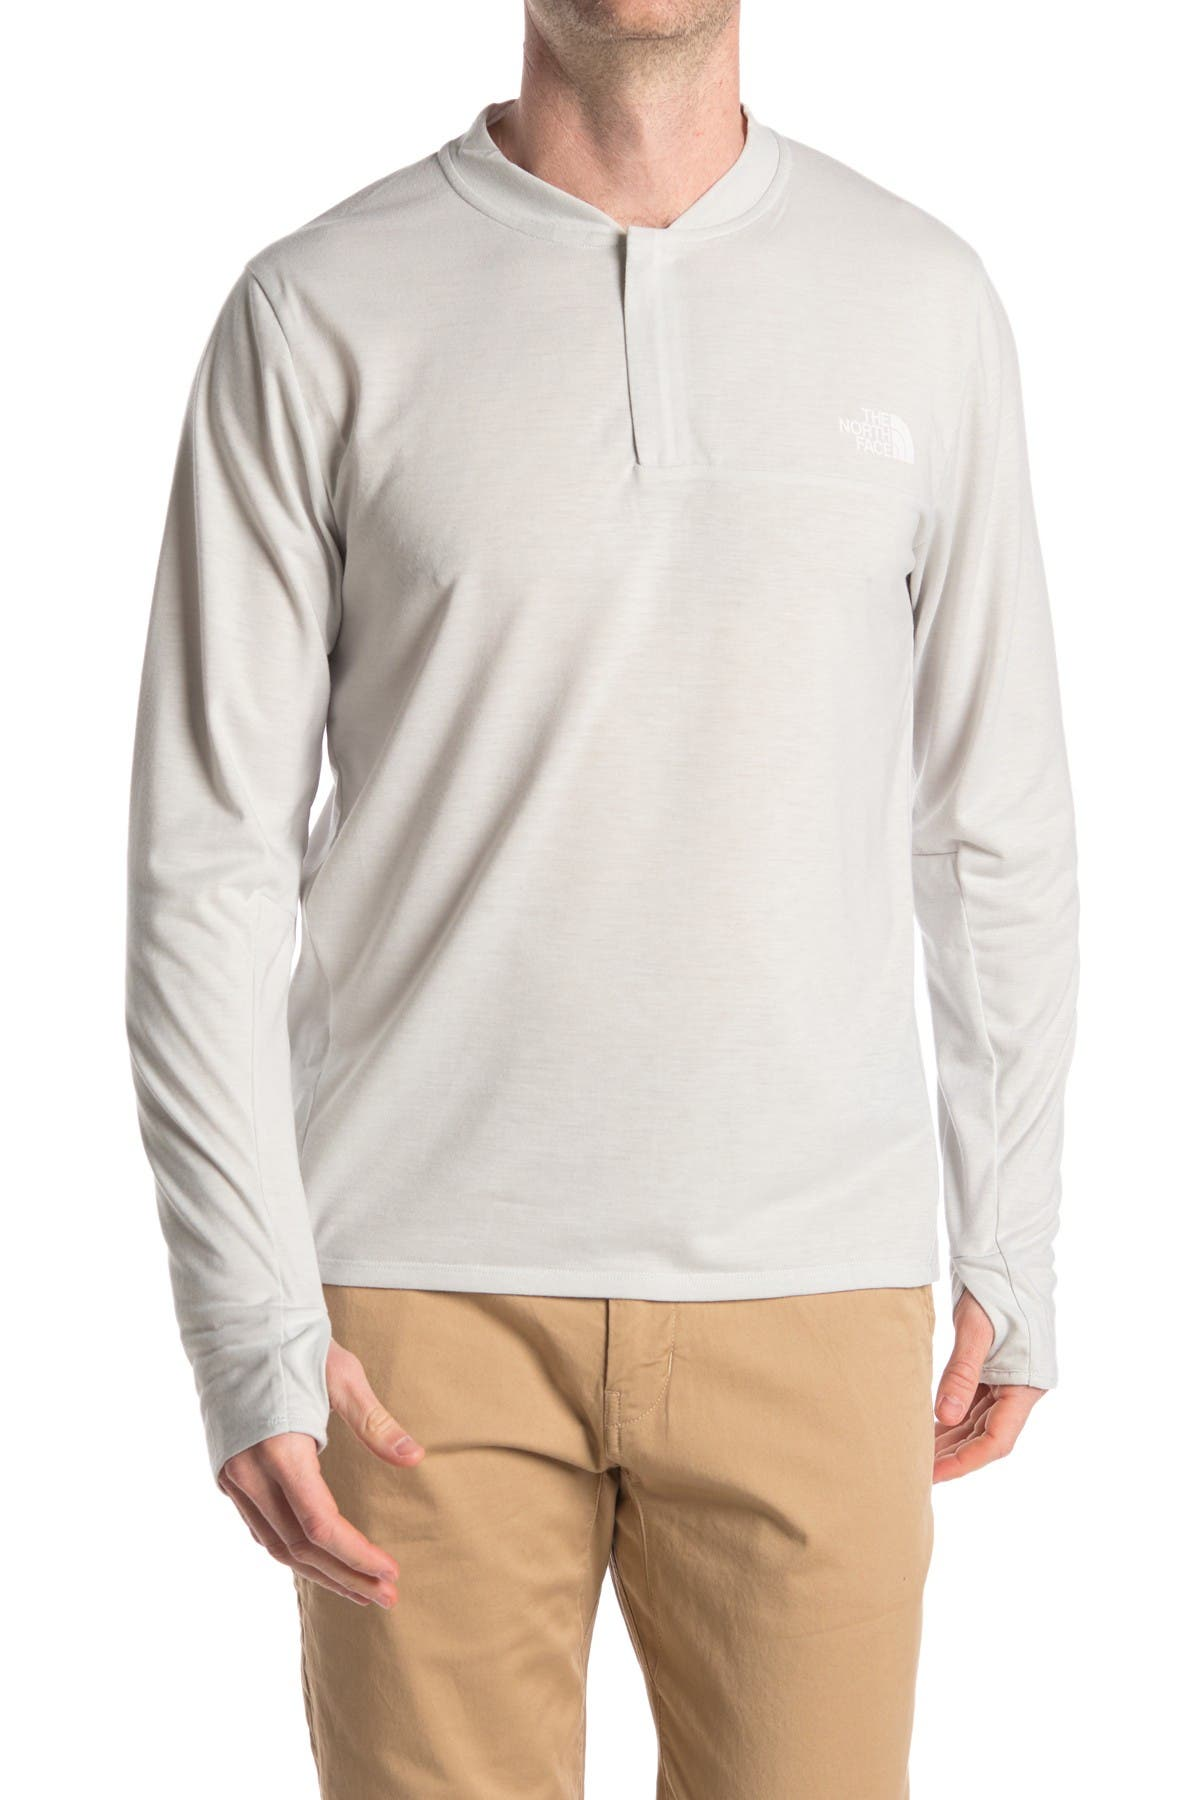 Image of The North Face Long Sleeve Thumbhole Henley